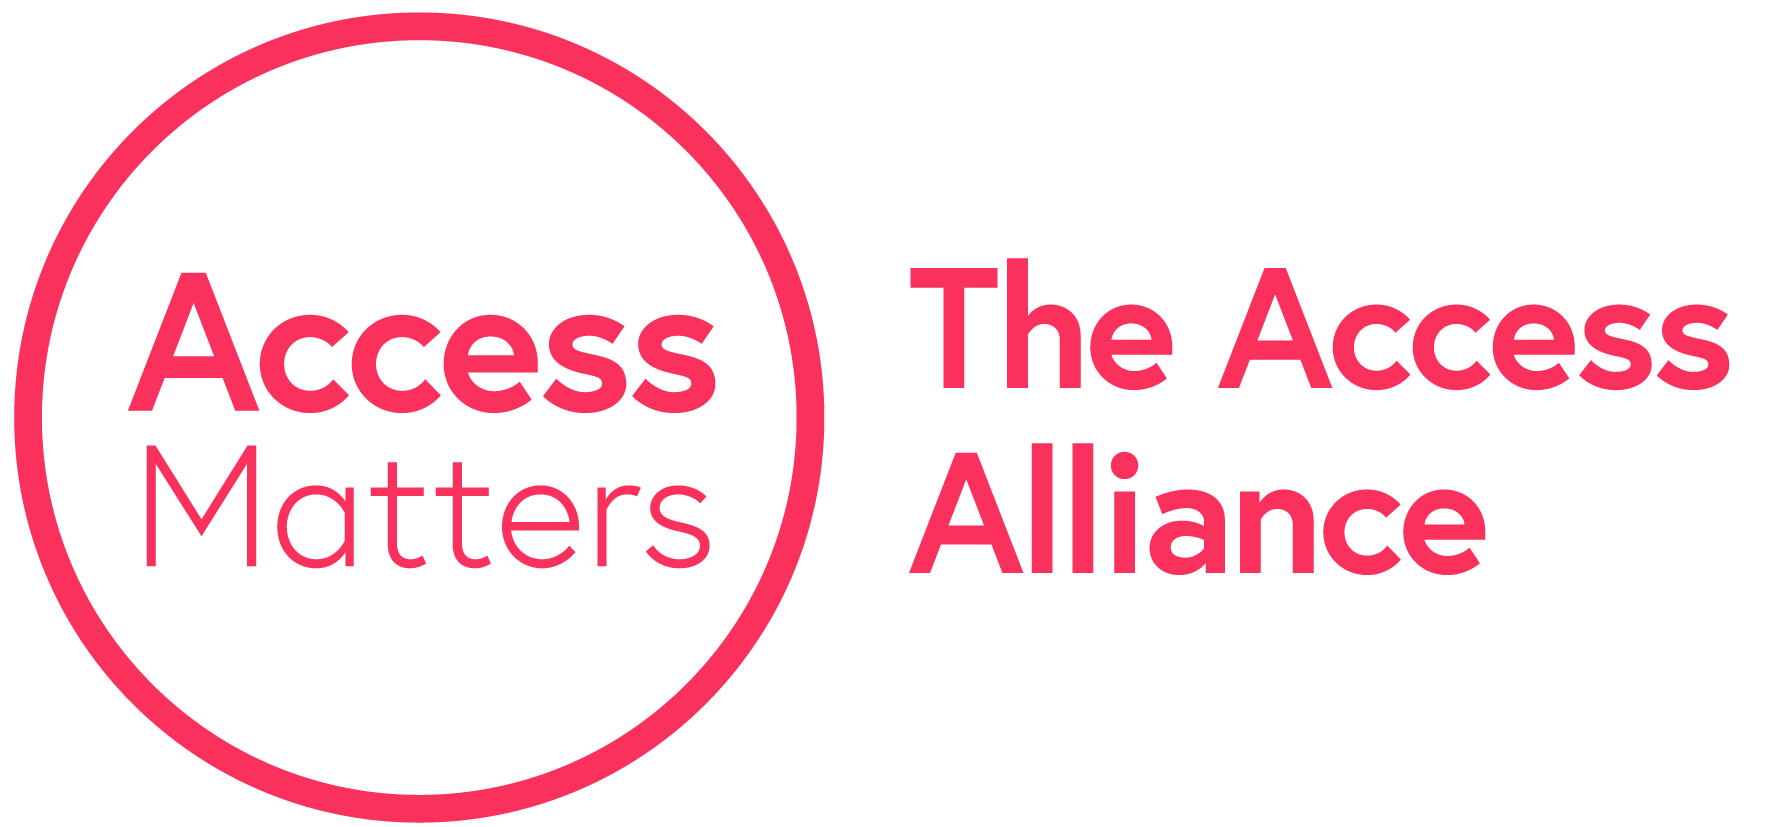 Visit The Access Alliance Website